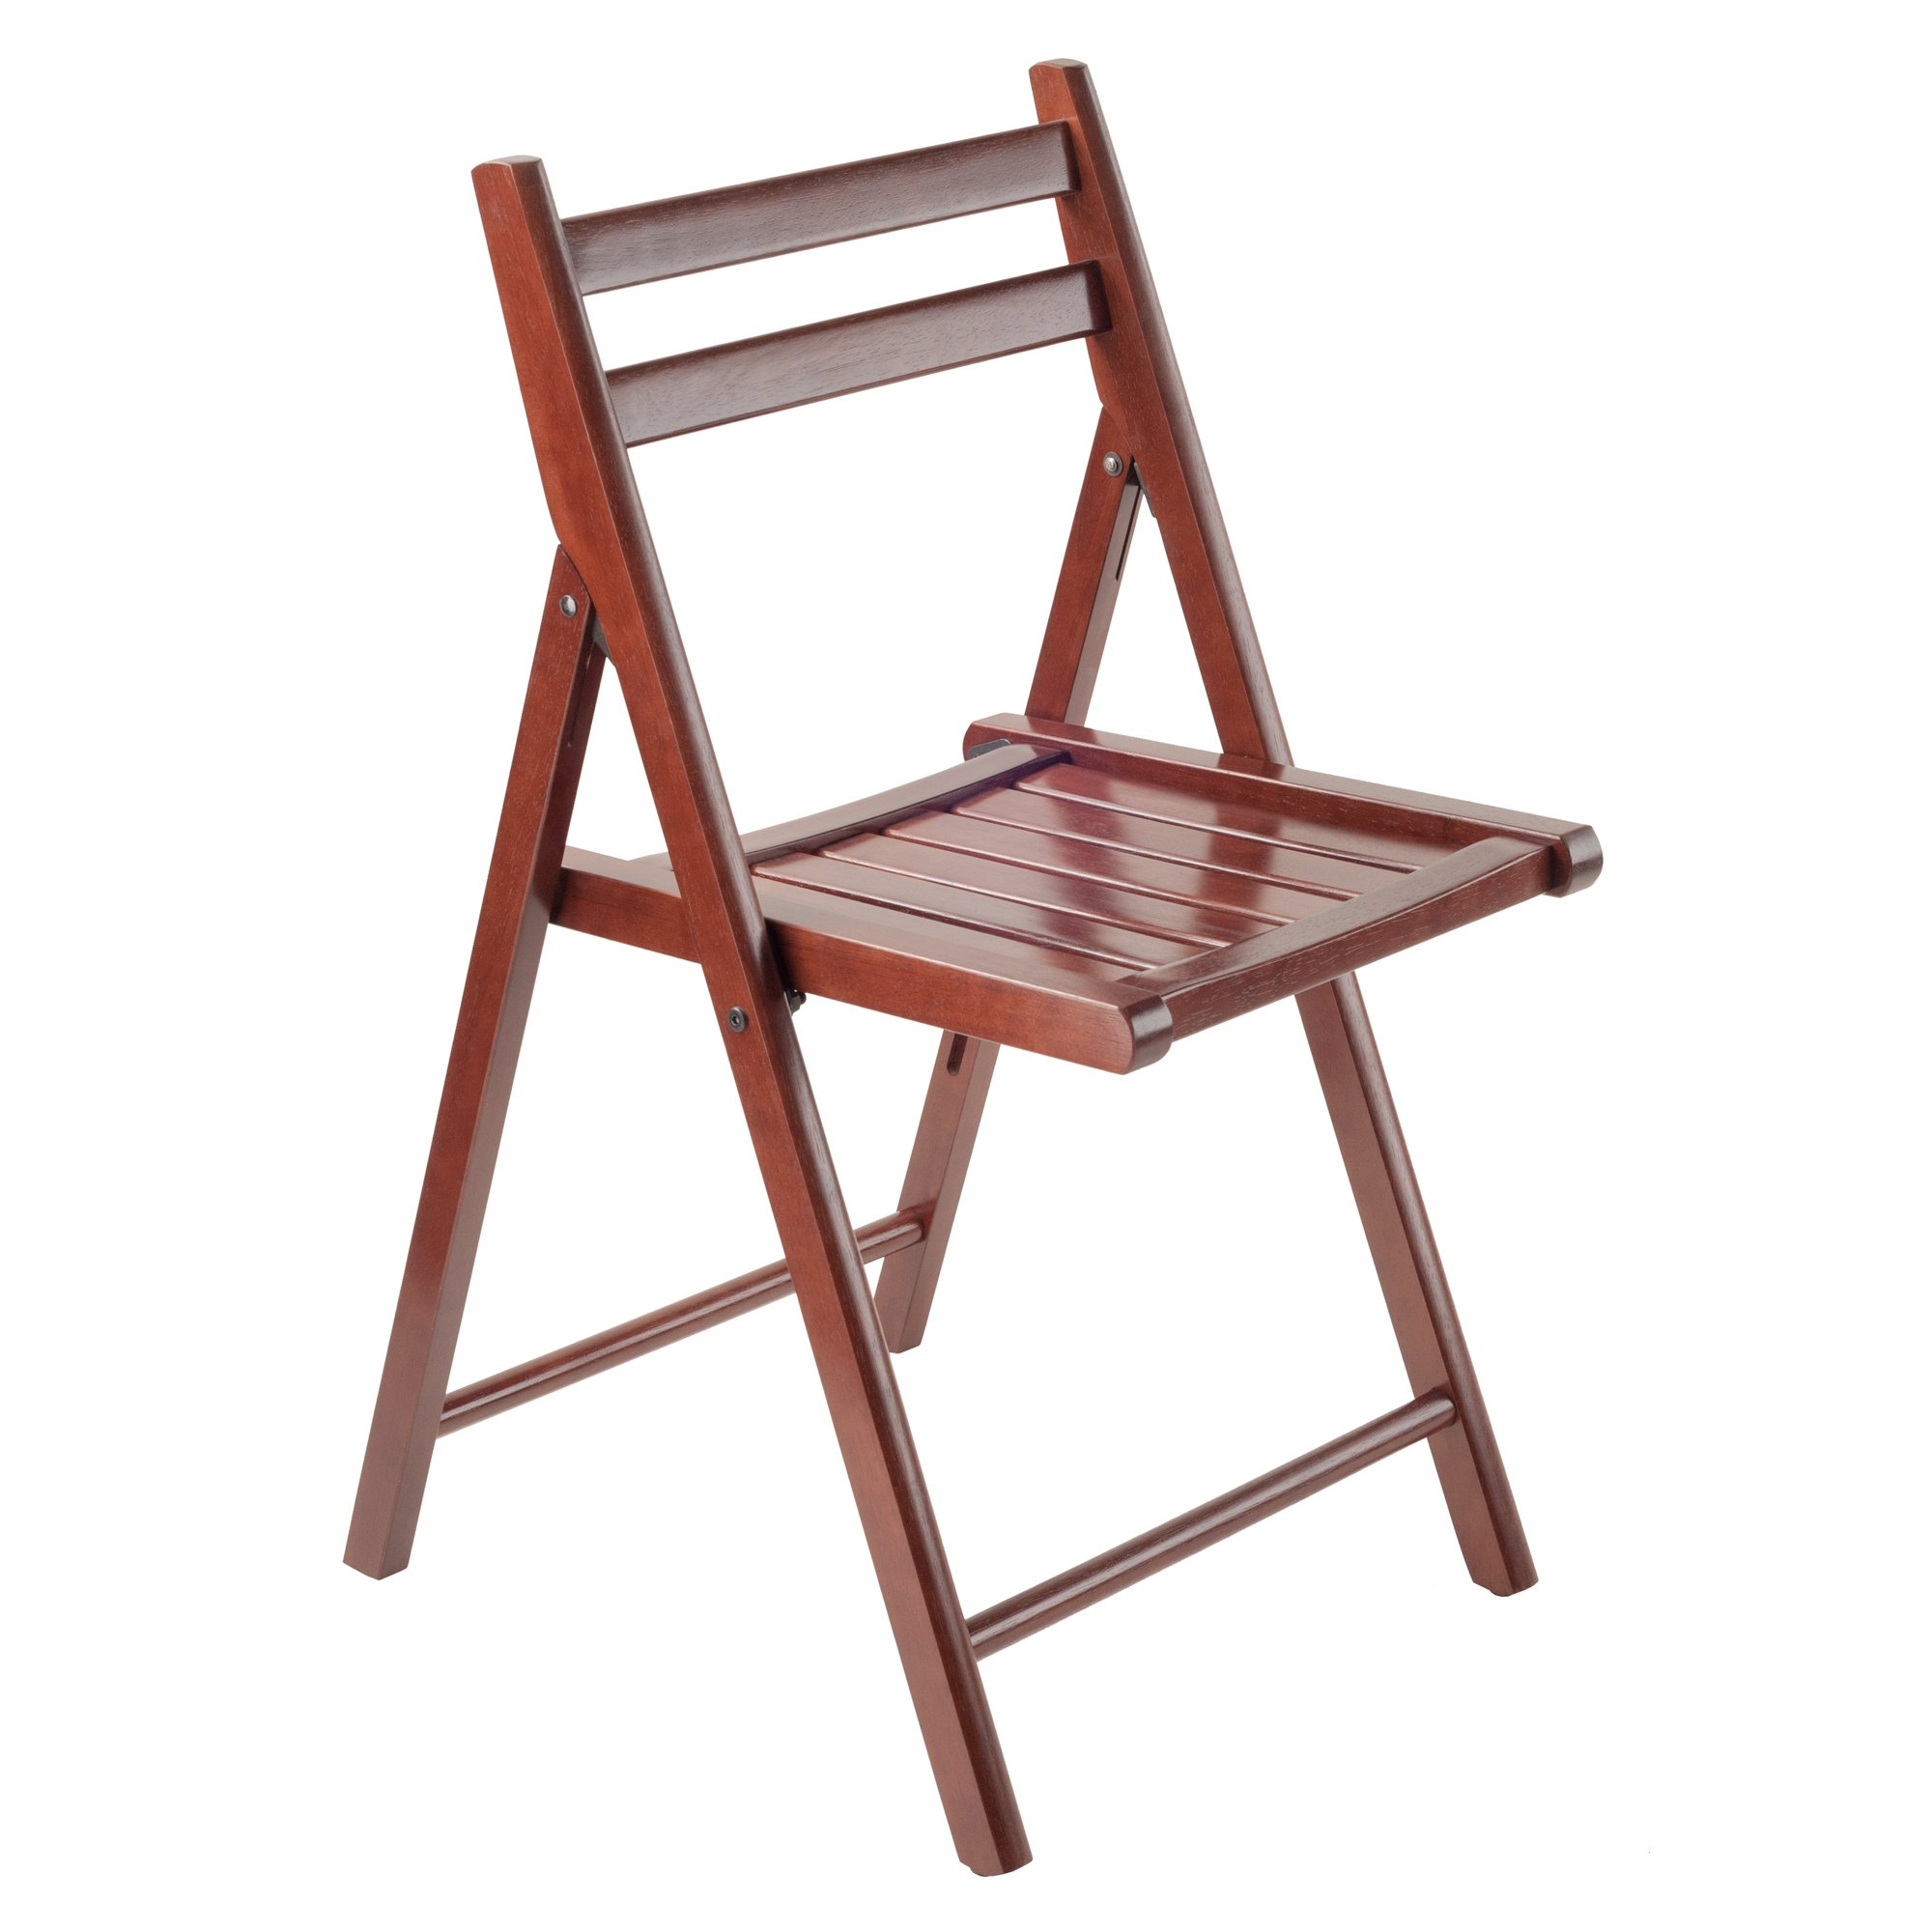 Winsome Wood Robin 4 Piece Folding Chair Set Walnut by Winsome Wood (Image #3)